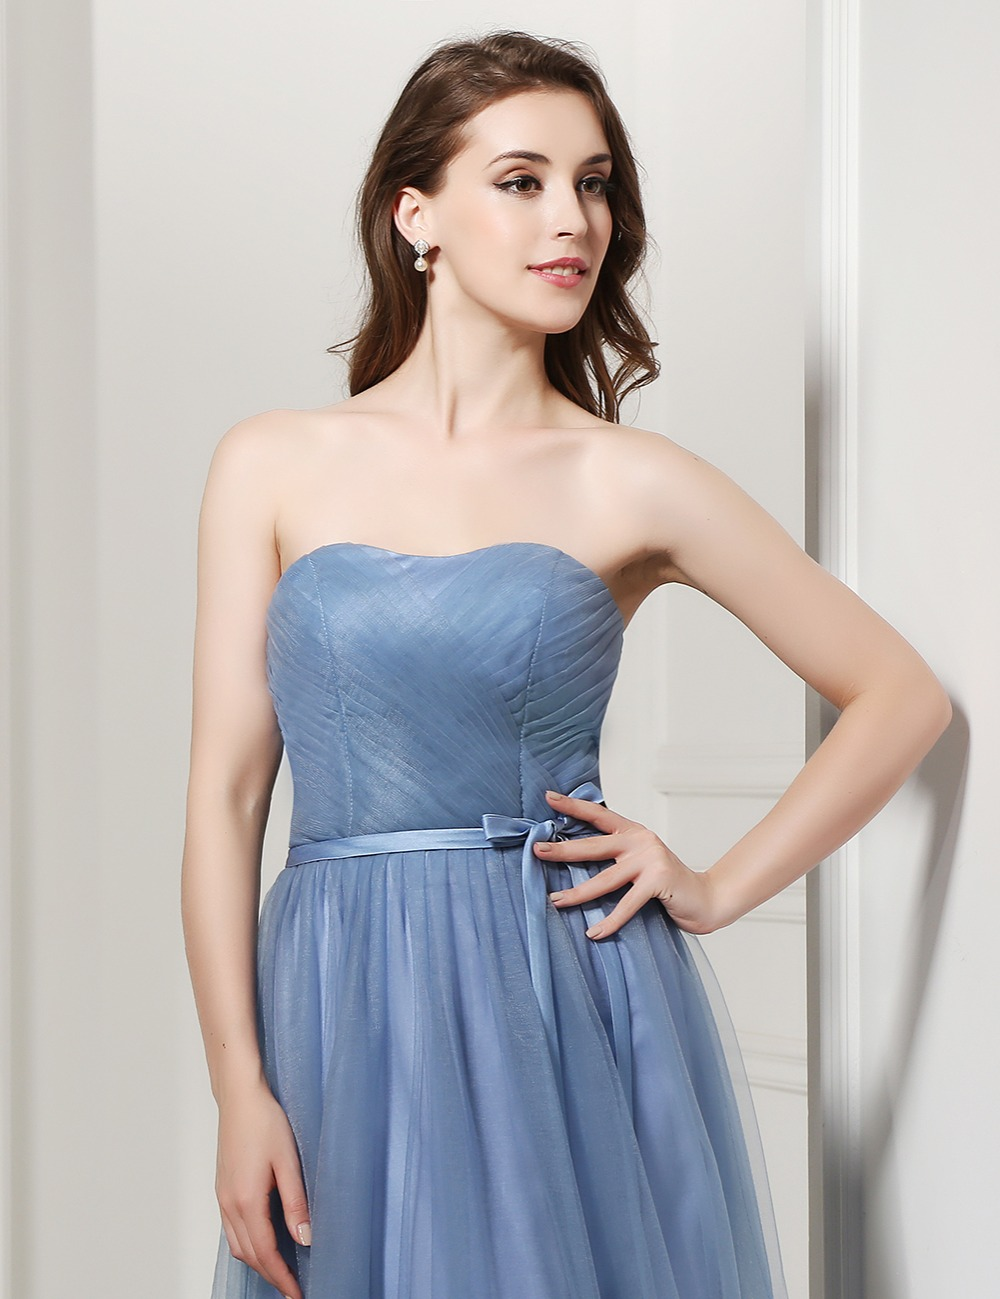 Attractive Dress Up Wedding Party Photos - All Wedding Dresses ...